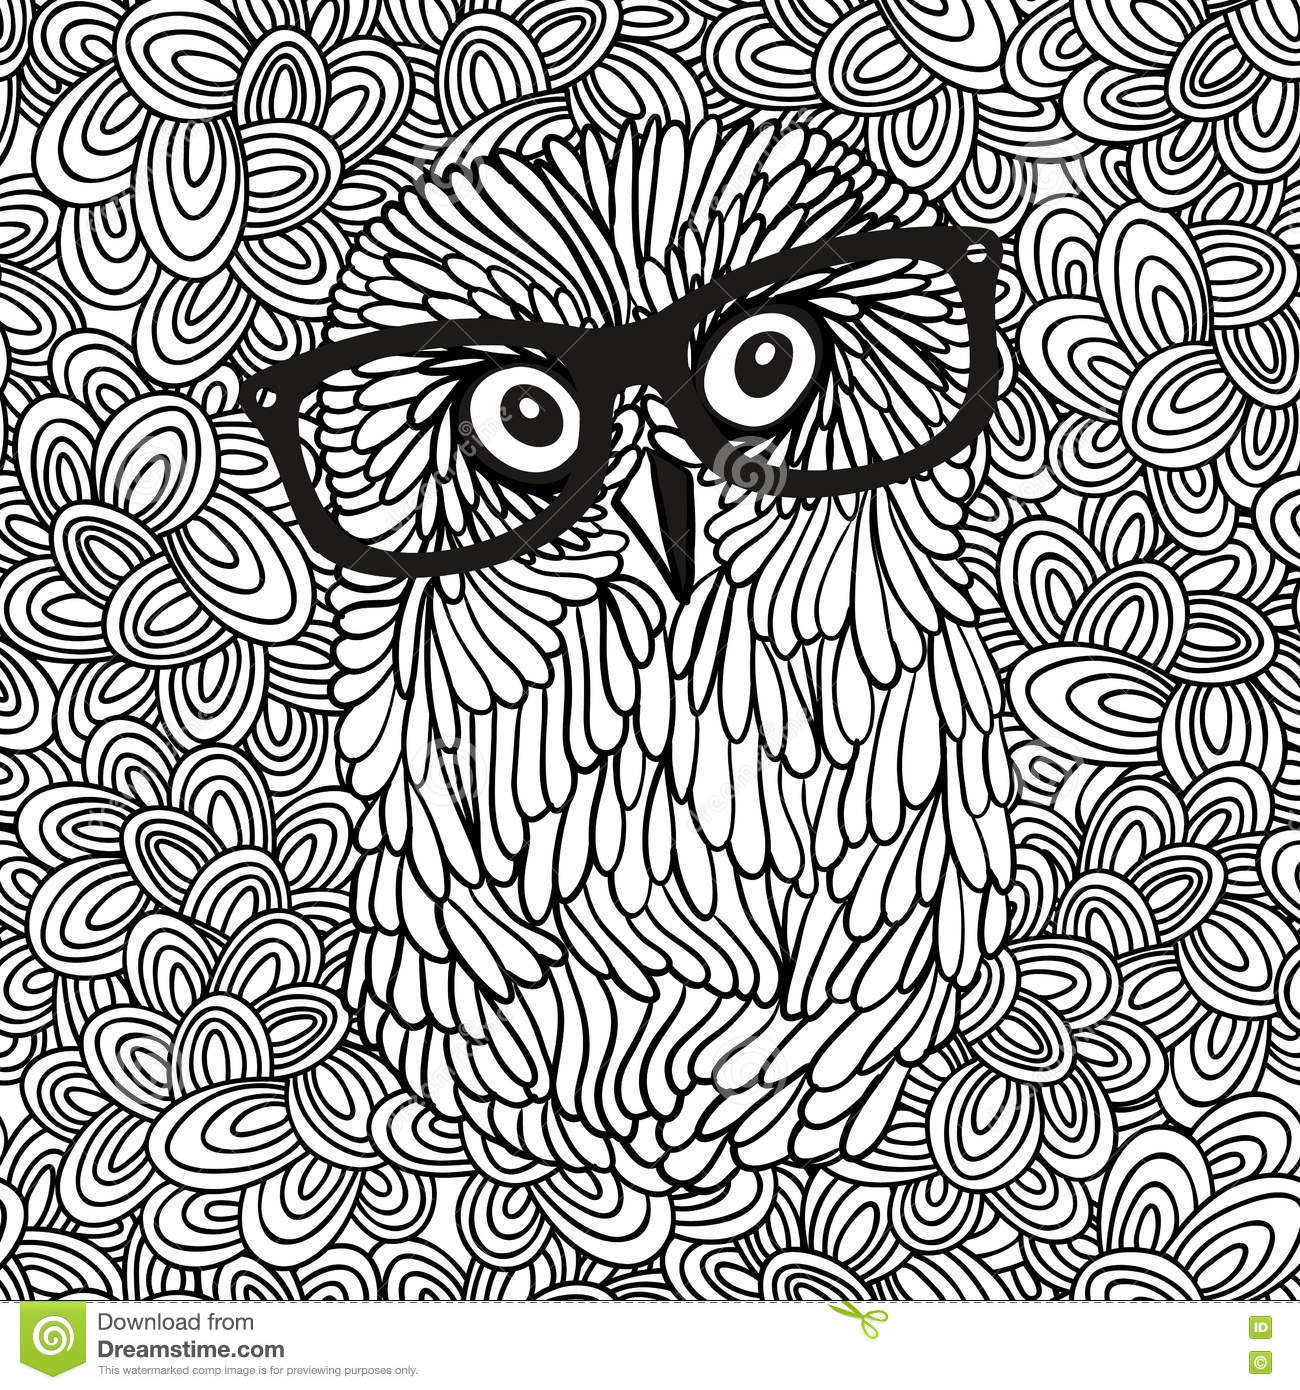 Doodle Pattern With Black And White Hipster Owl Image For Coloring